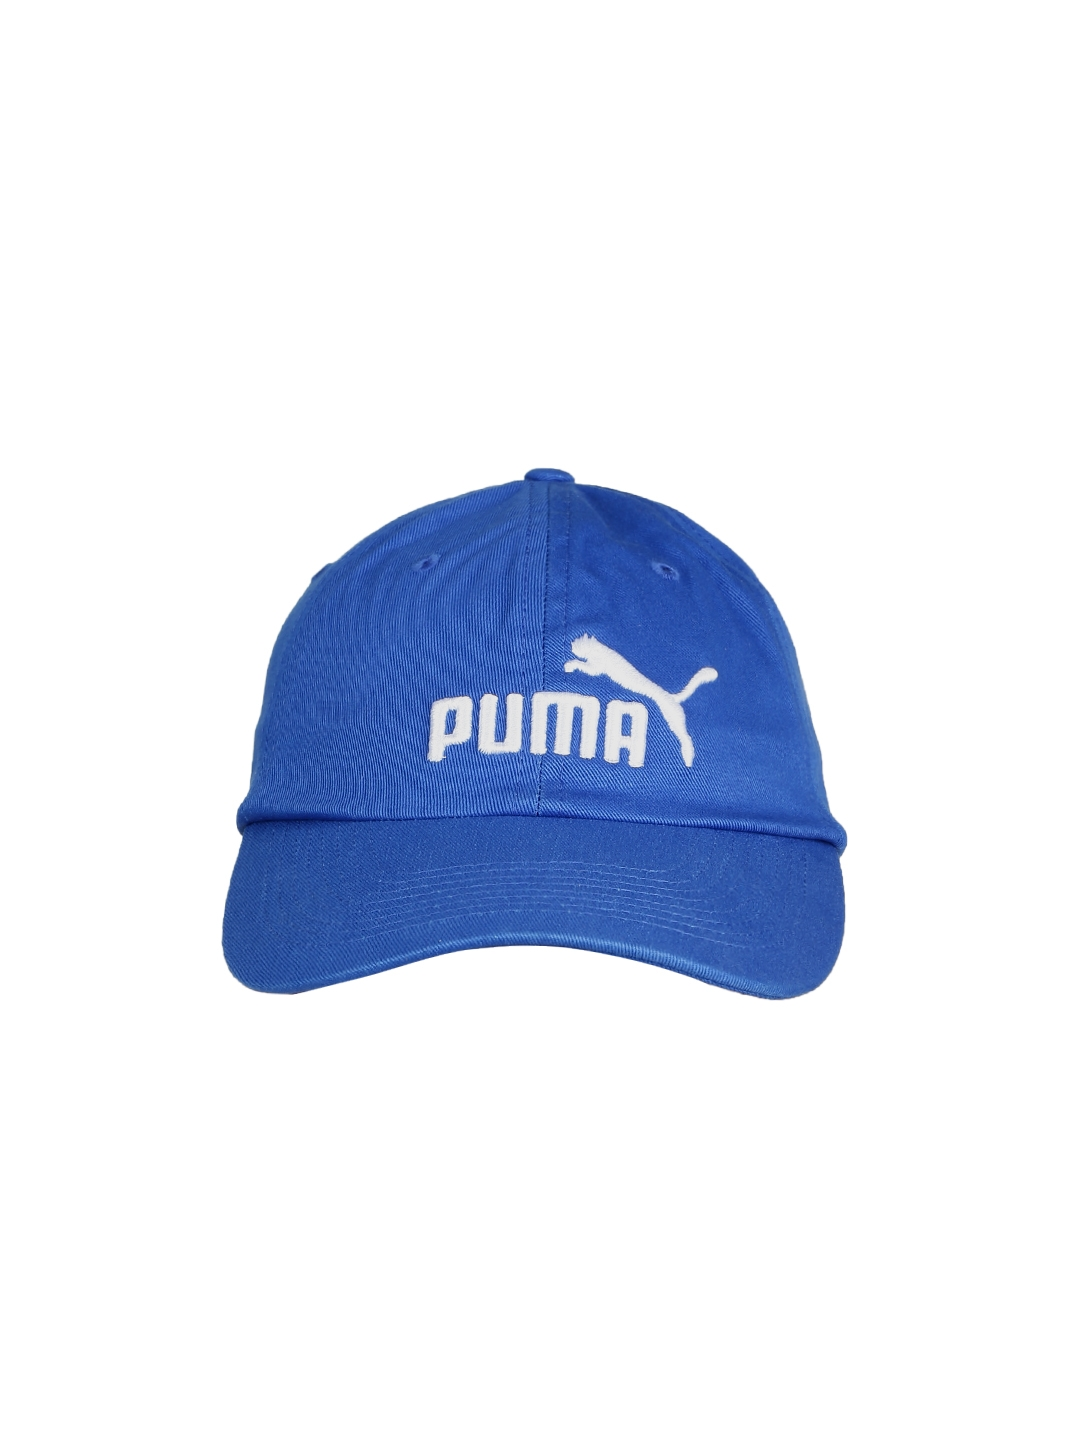 Buy Puma Unisex Blue ESS Baseball Cap - Caps for Unisex 2345285  a9846890a82